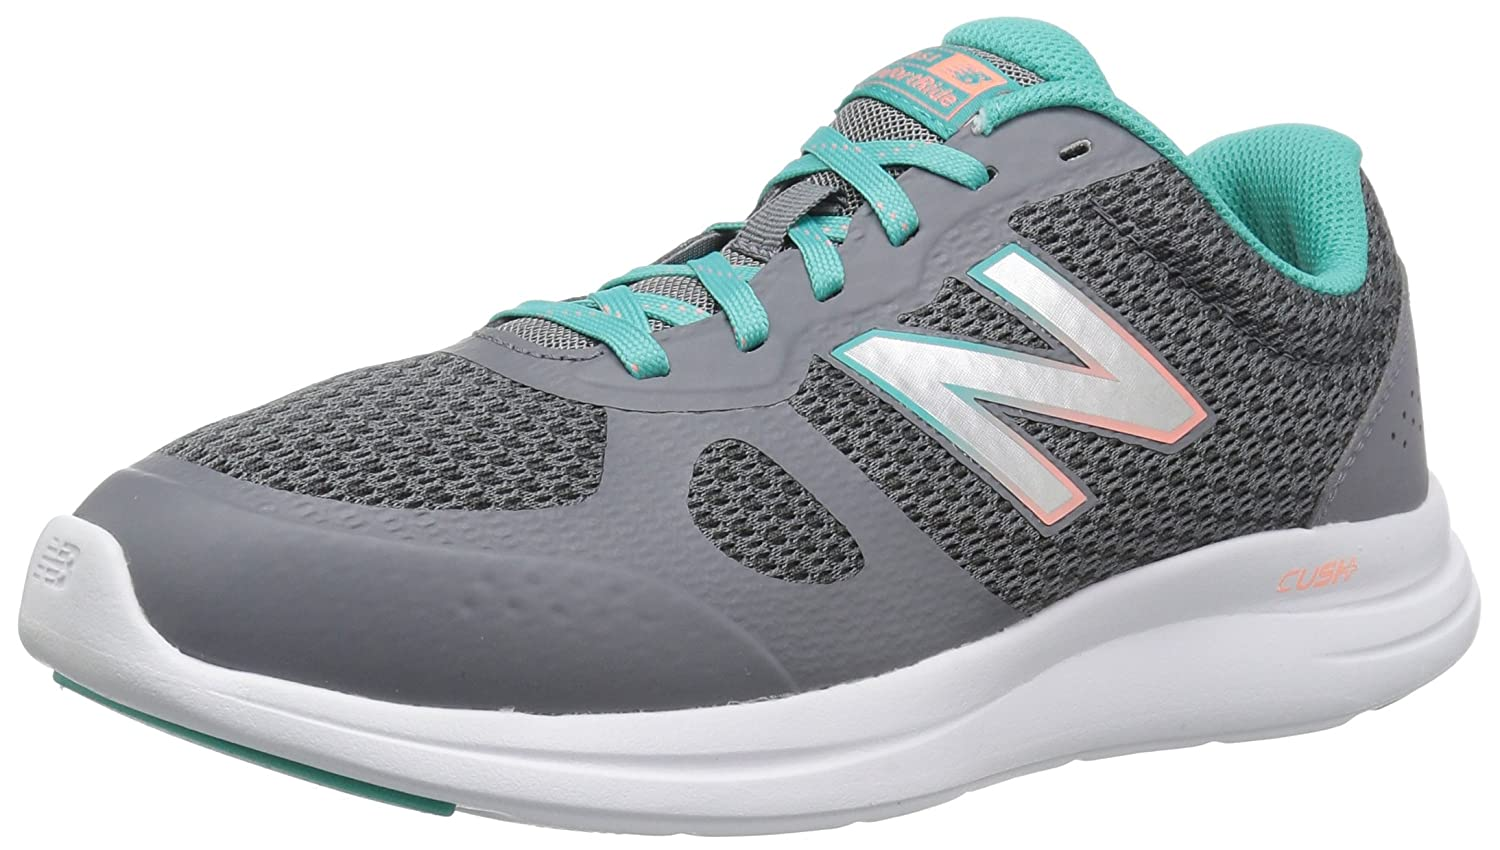 New Balance Women's Versi v1 Cushioning Running Shoe B0751RBN8D 8 B(M) US|Grey